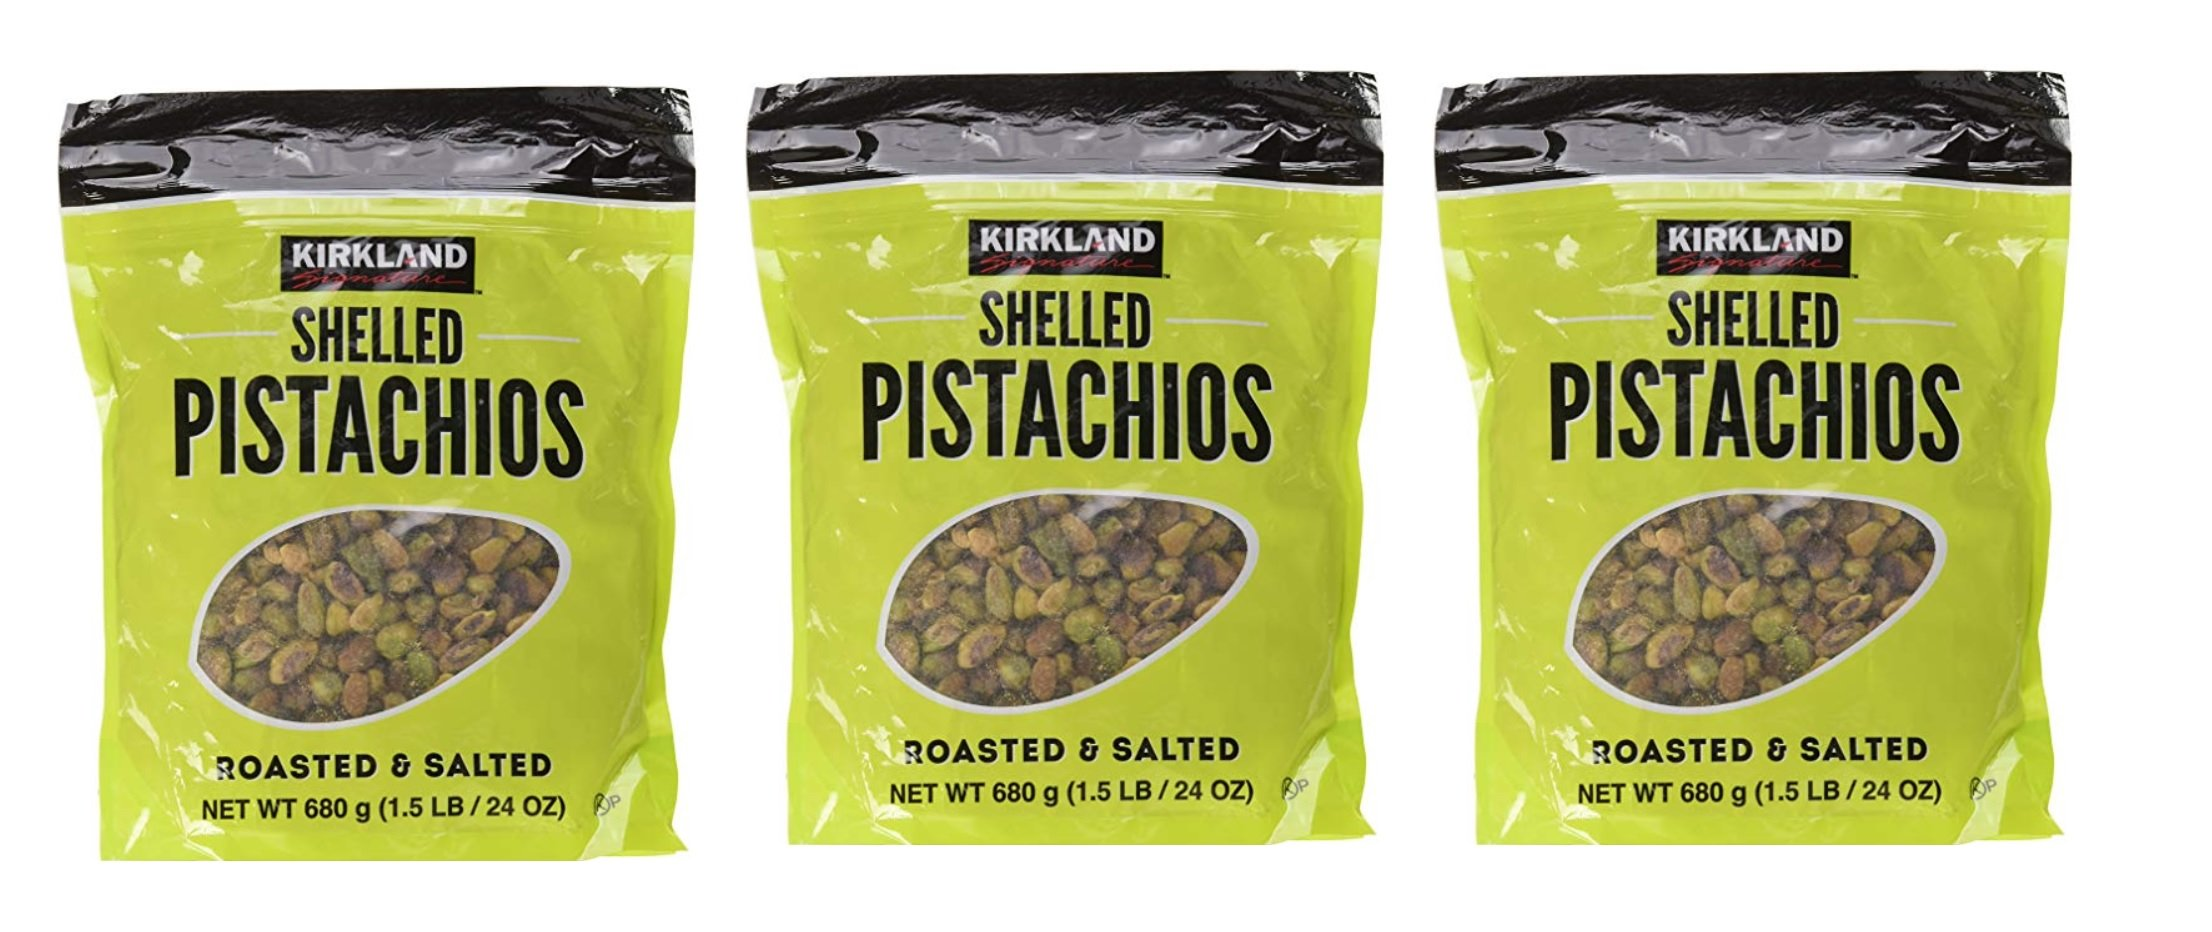 Kirkland Signature rIVapM Shelled Pistachios, Roasted & Salted, 24 oz (3 Pack)